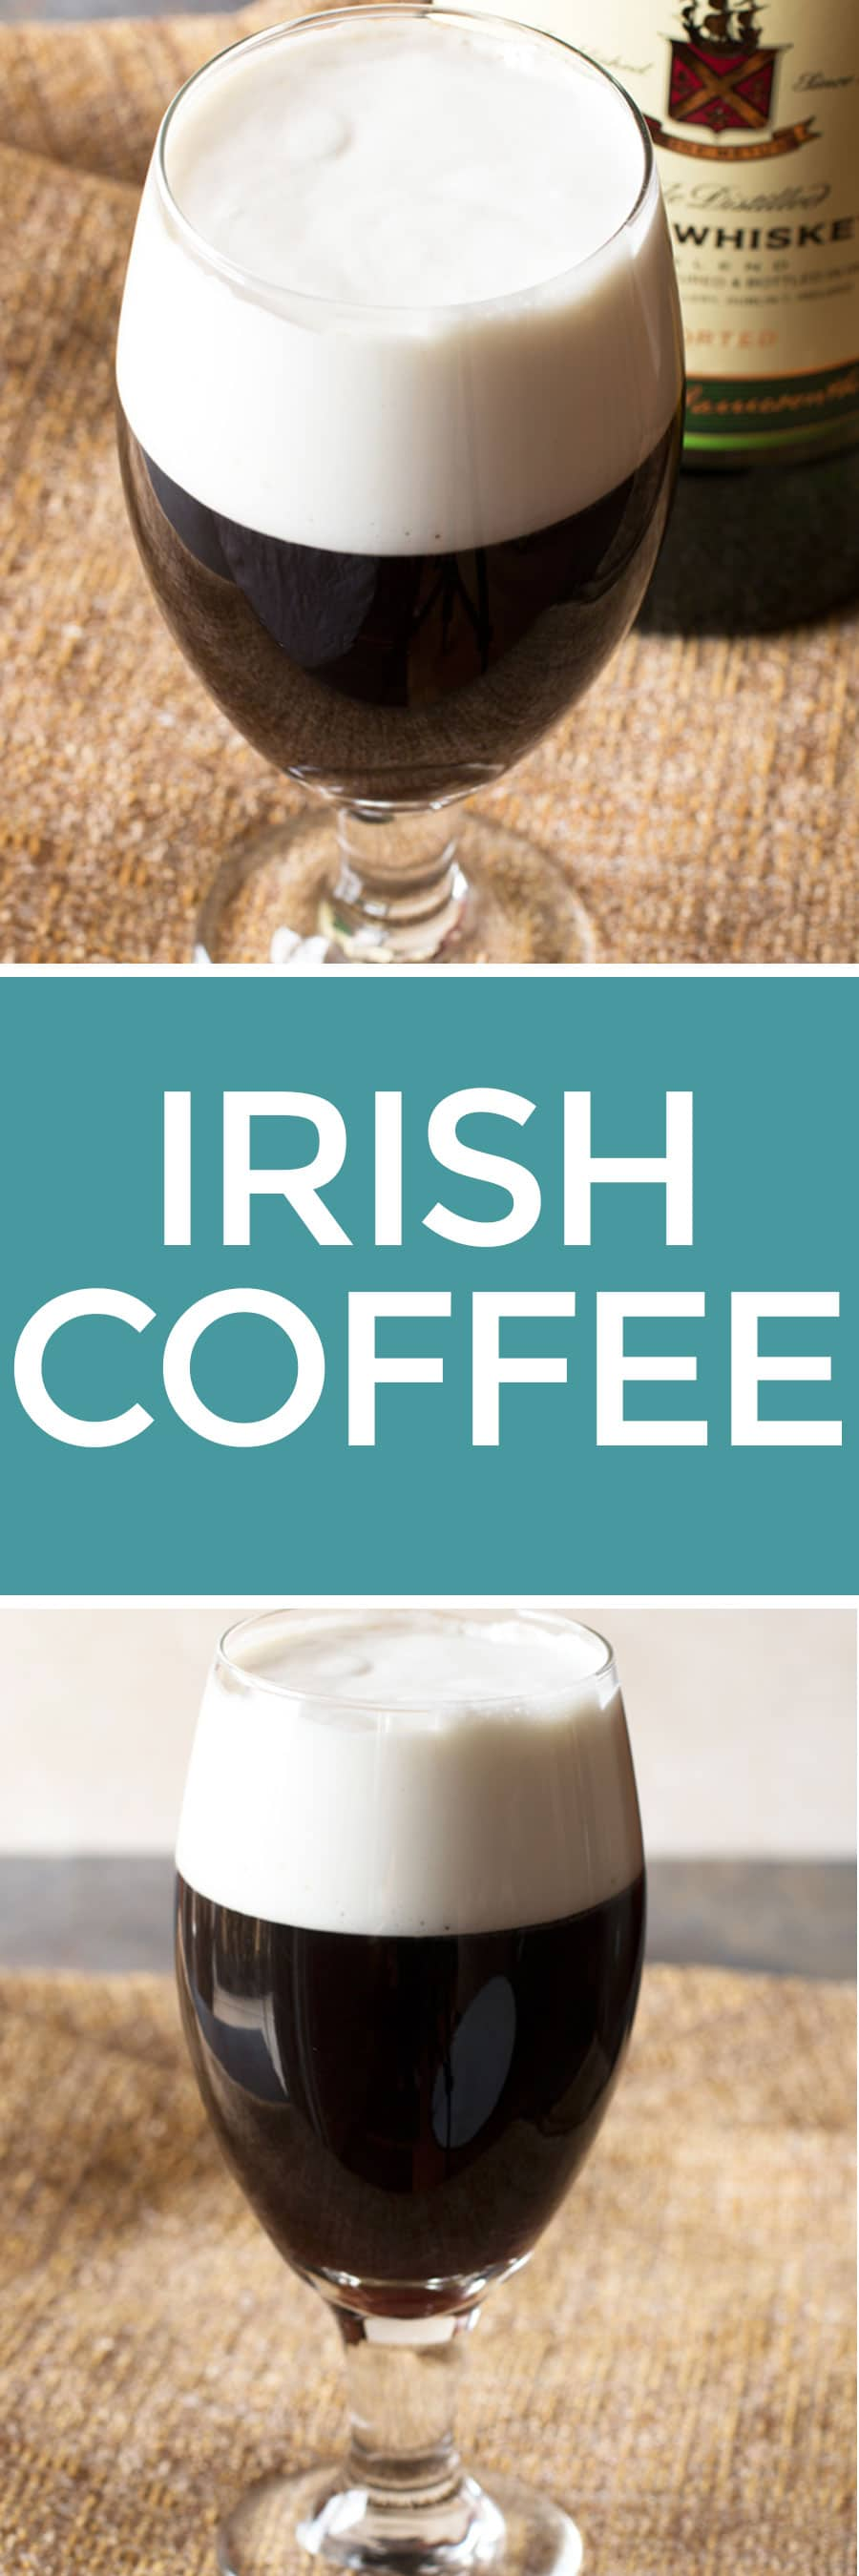 Irish Coffee | cakenknife.com #appetizer #beef #snack #stpatricksday